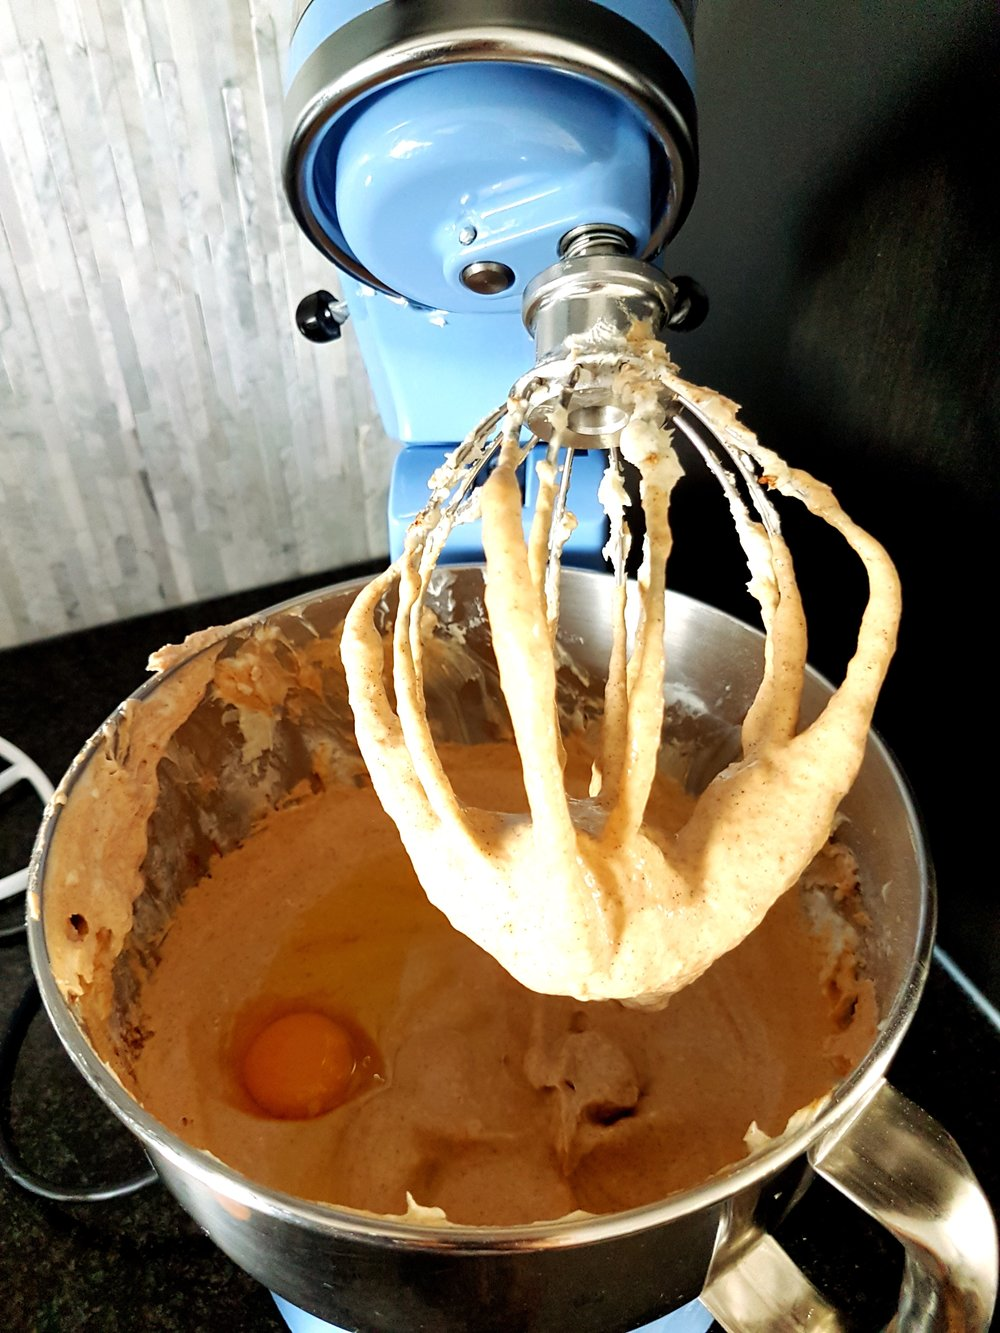 cheesecake batter in a stand mixer